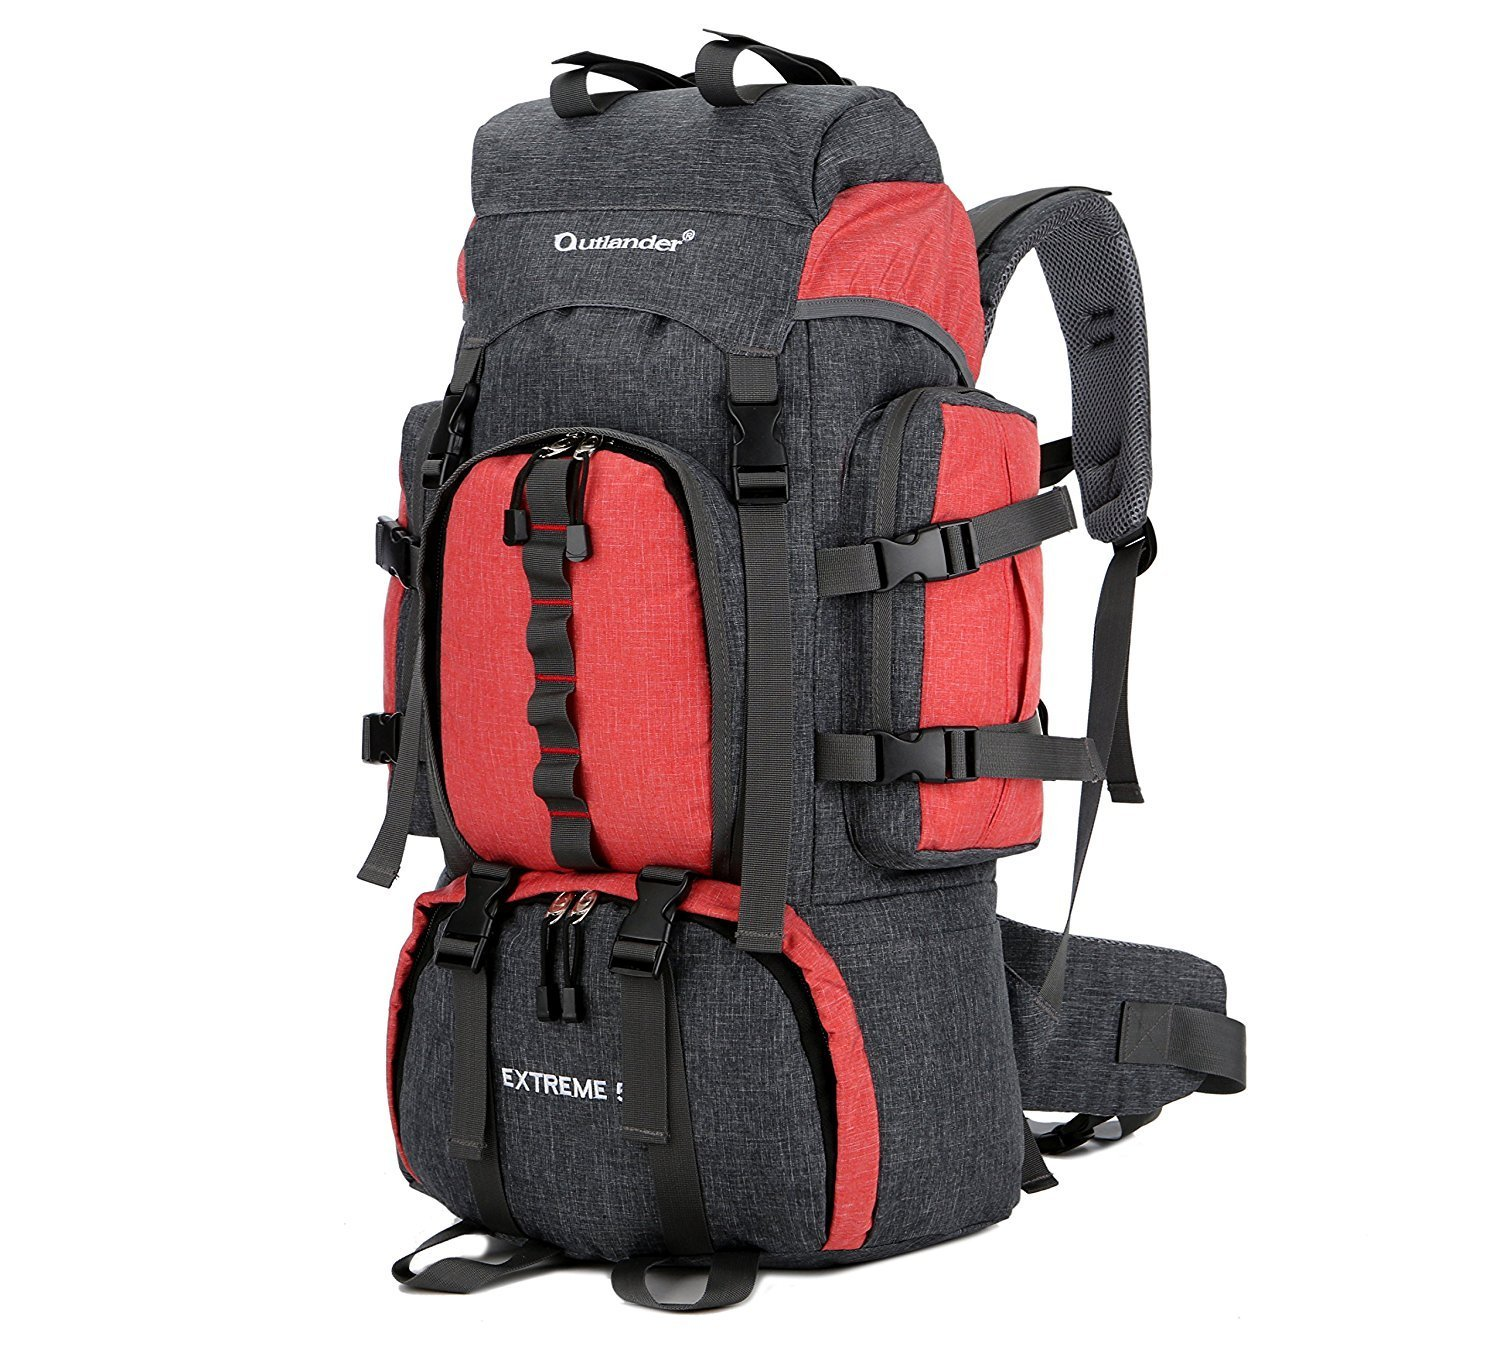 dfa49b4b2dfd Details about 55L Backpack Internal Frame Hiking Backpacking Lightweight  Waterresistant Travel